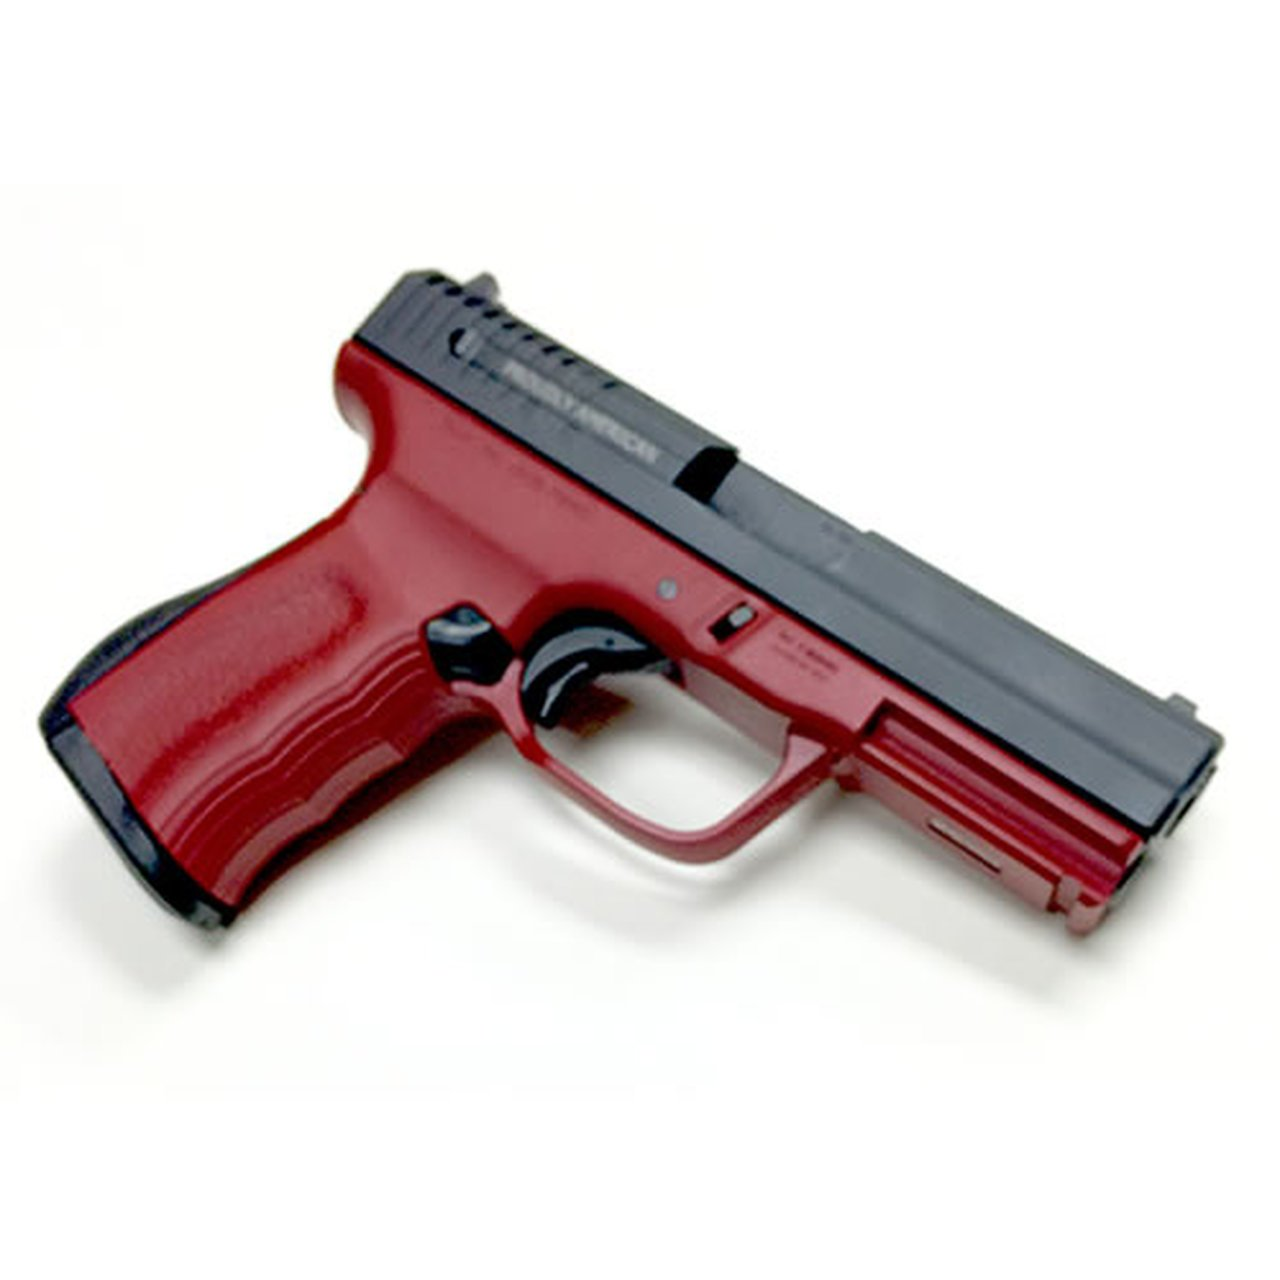 FMK 9C1 G2 Compact 9mm 4